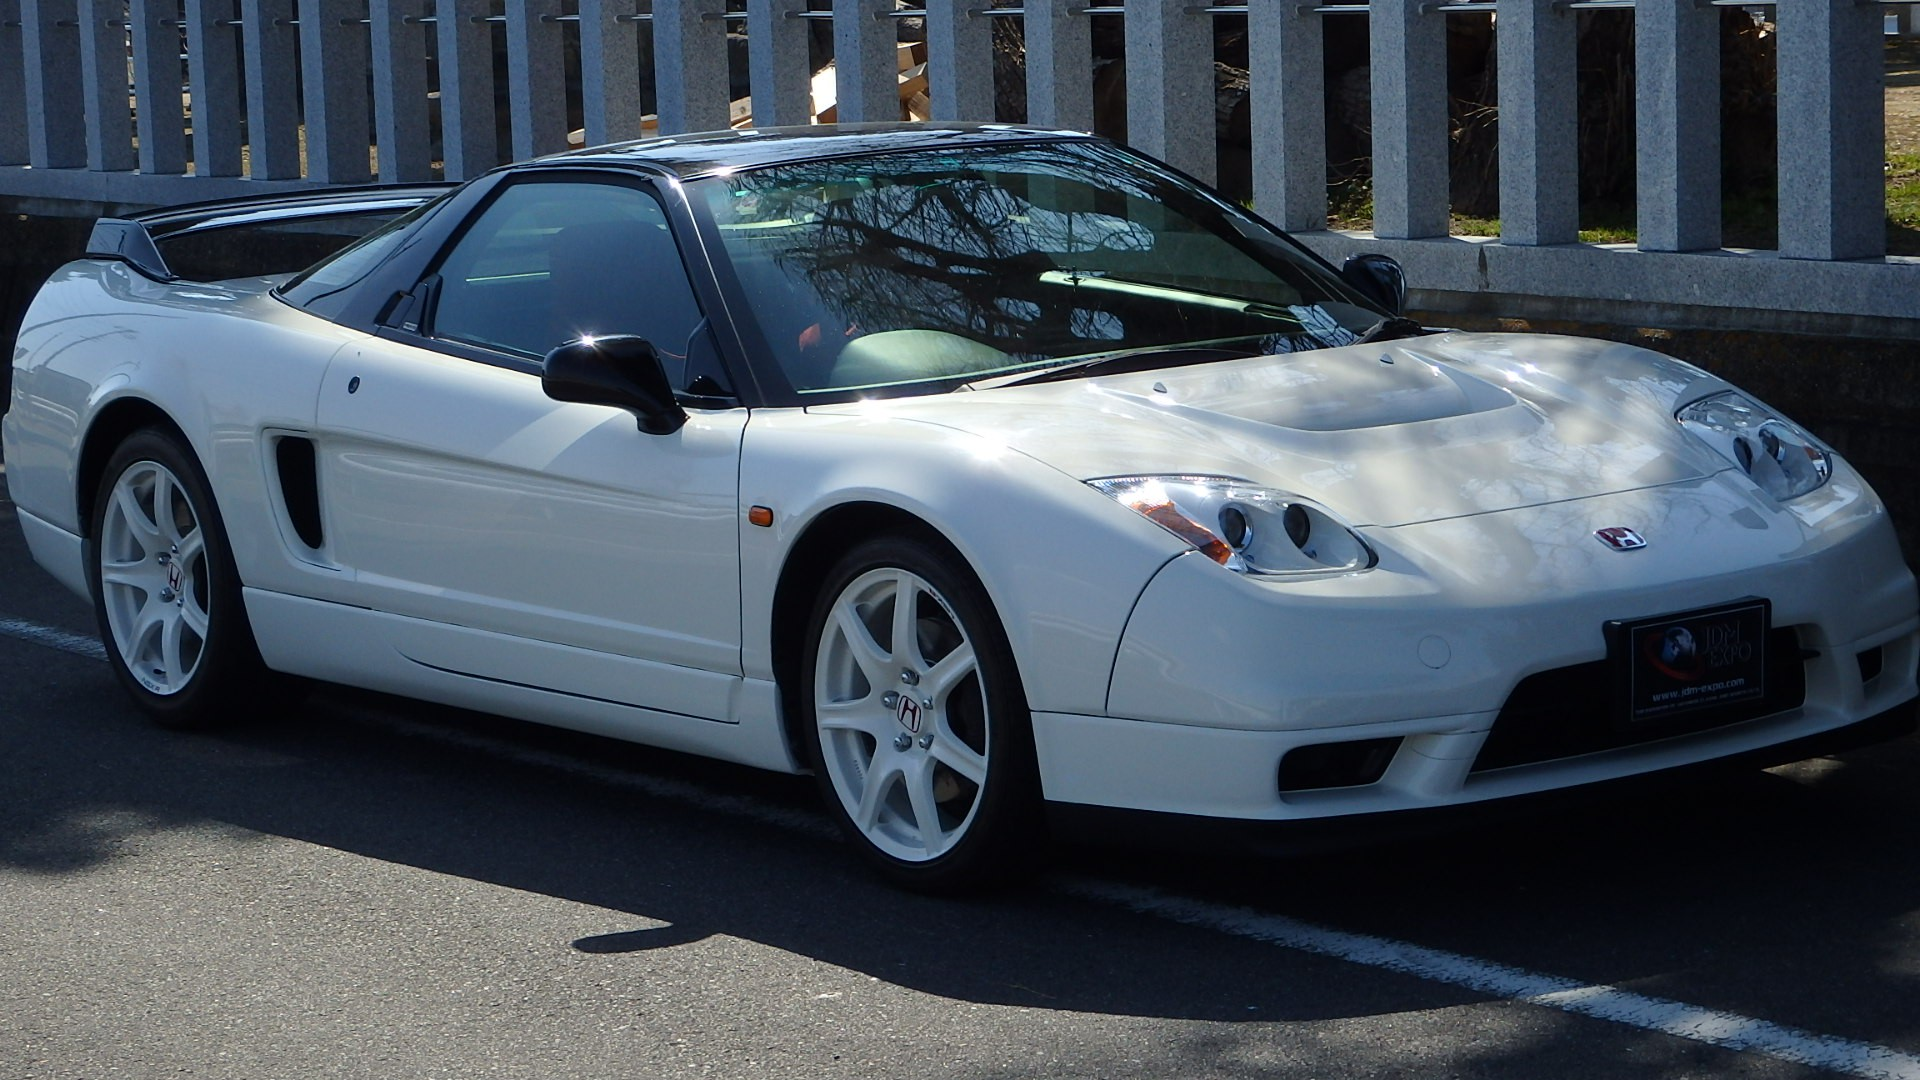 honda nsx type r na2 for sale 2004 nsx r white jdm cars at jdm expo. Black Bedroom Furniture Sets. Home Design Ideas